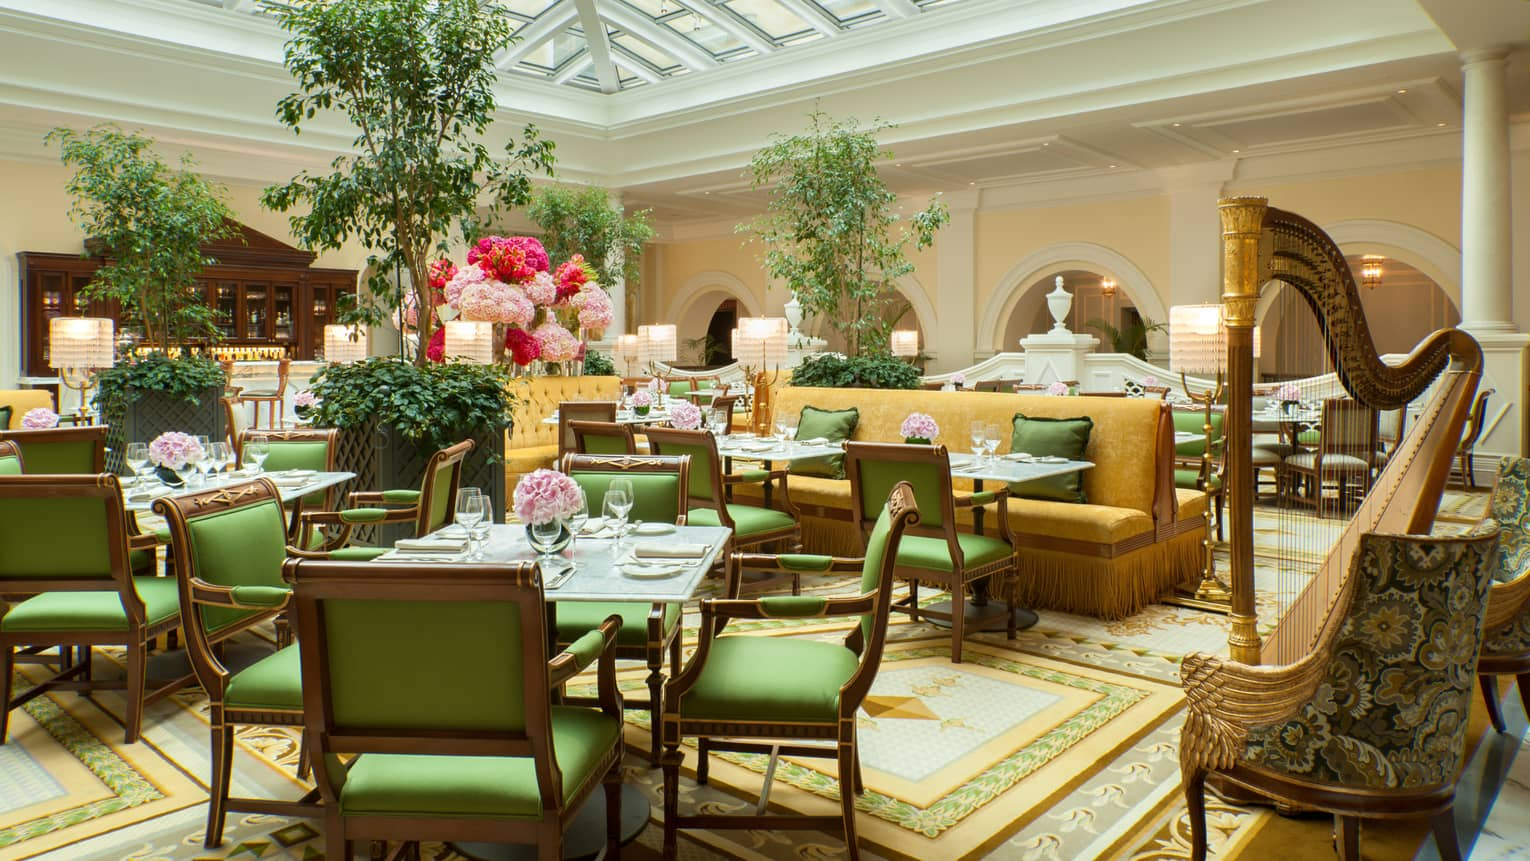 Tea Lounge dining tables with green chairs, gold accents, large harp under vaulted ceiling, skylight